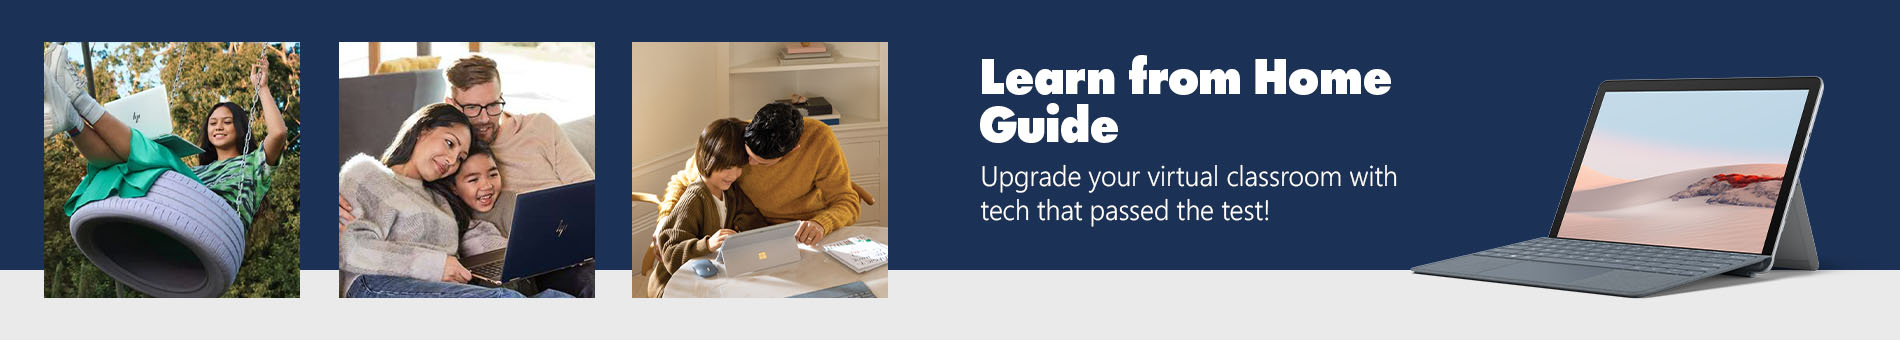 Ant Holiday Gift Guides Under499 11.09.learnfromhome